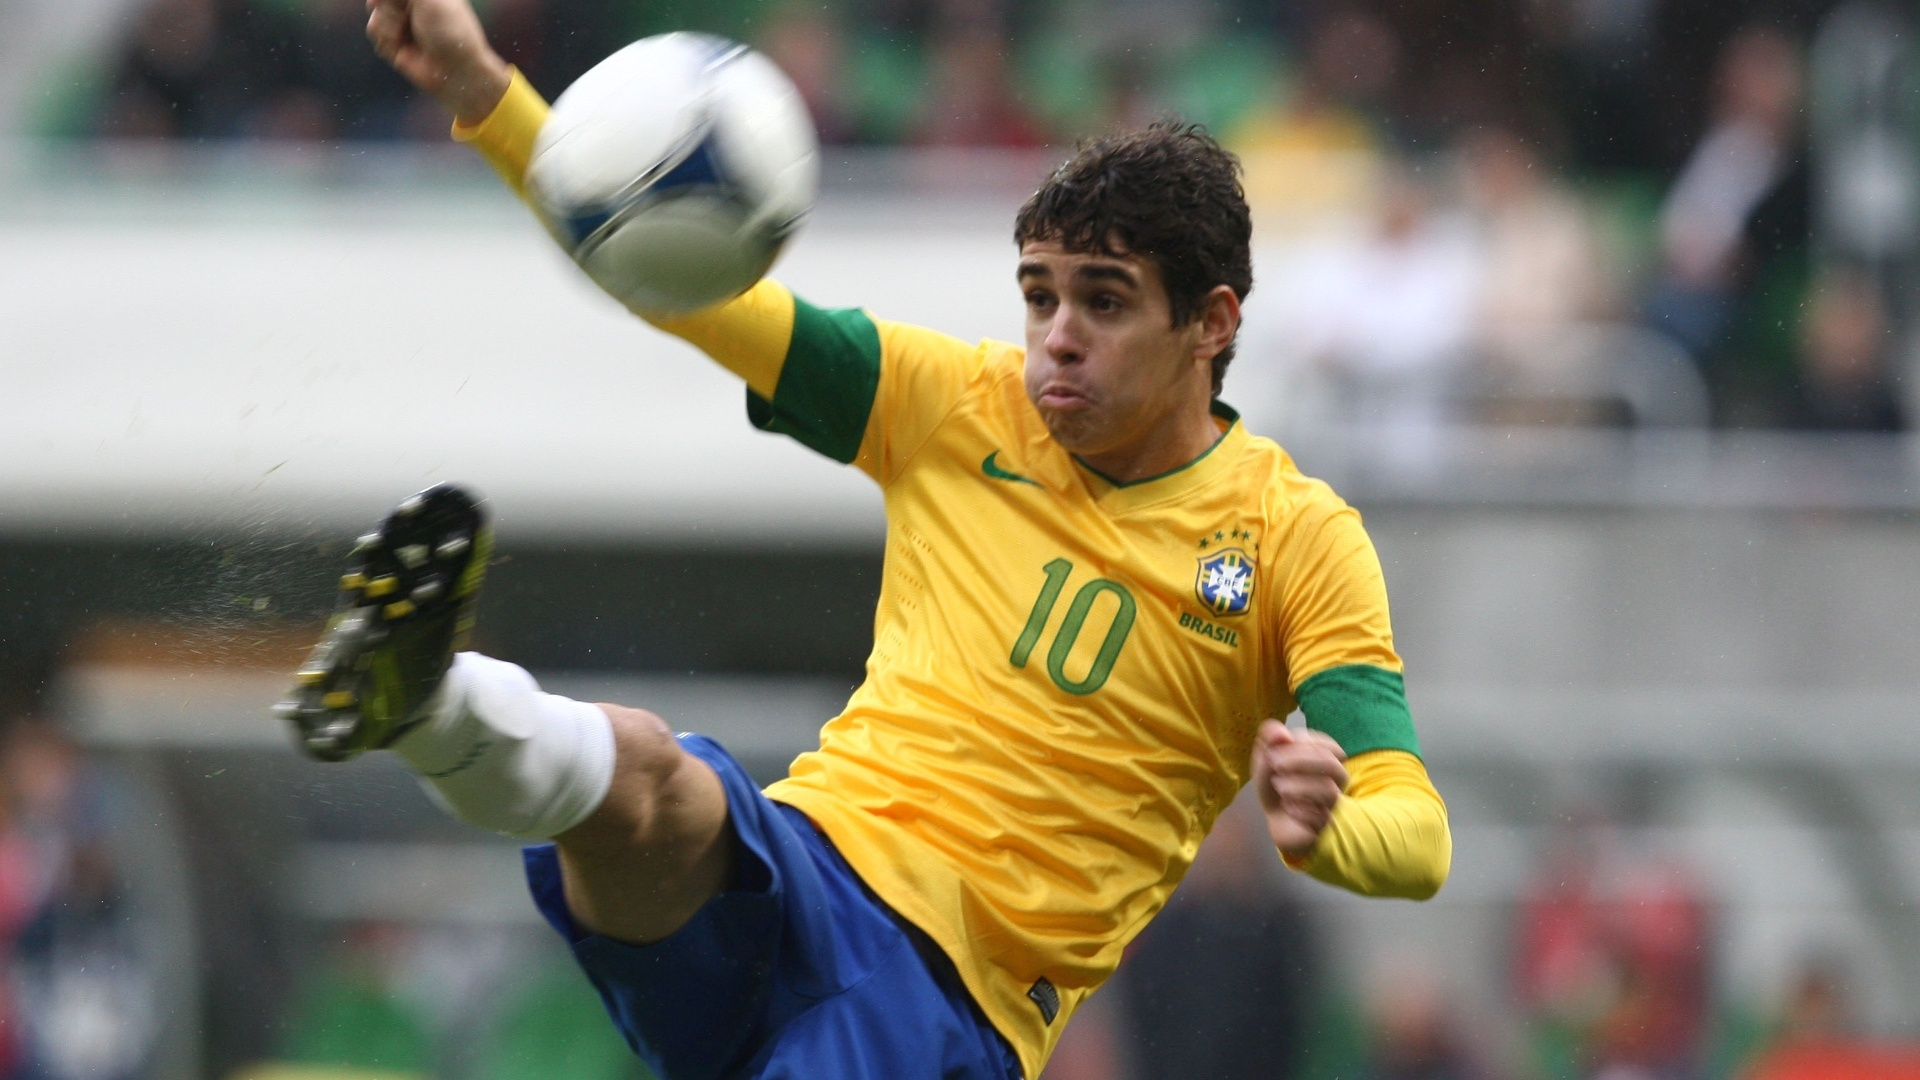 Oscar tenta dominar a bola no amistoso contra a seleo japonesa